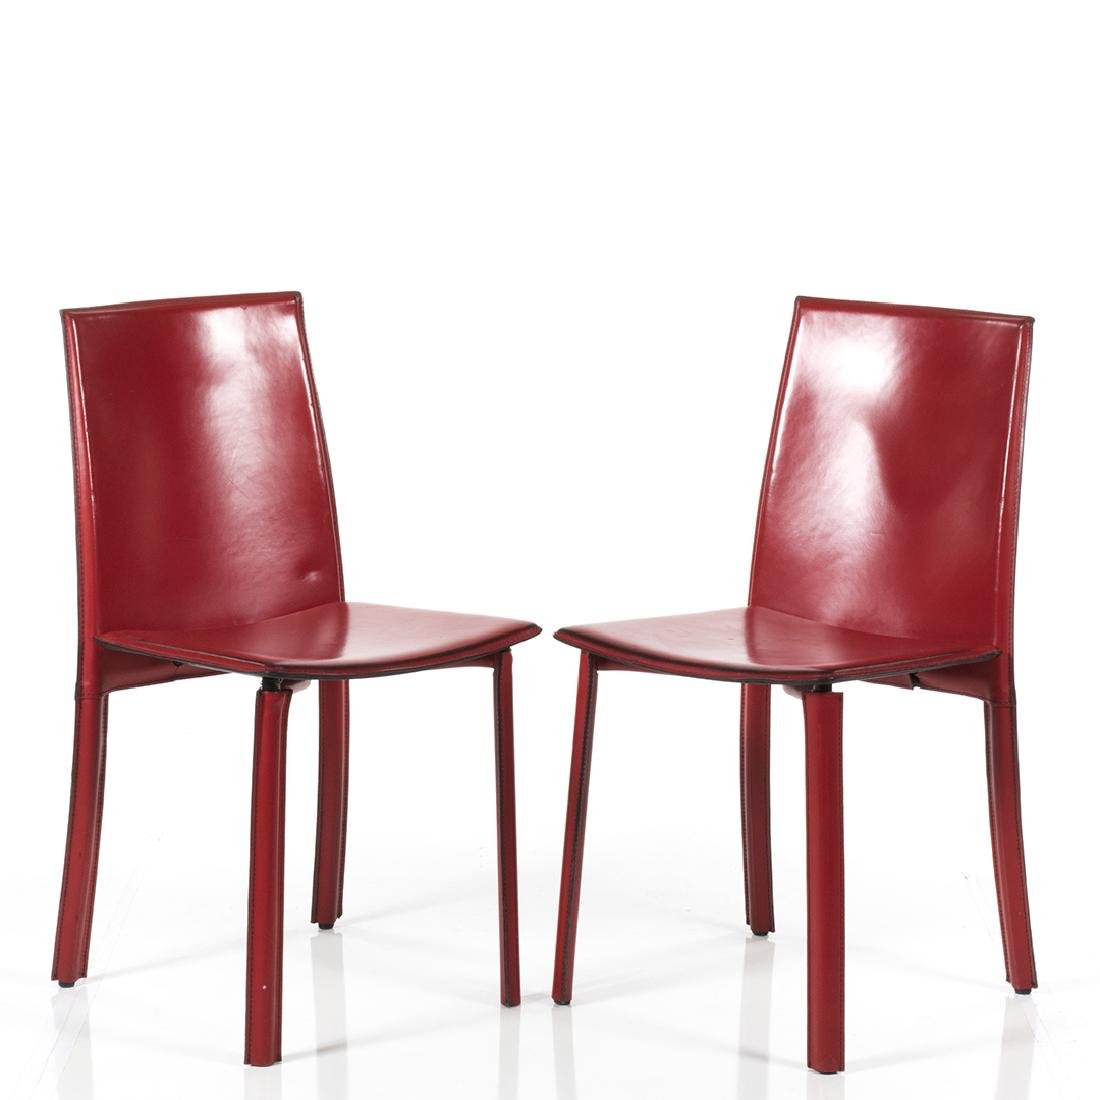 Mario Bellini Style Chairs (2) - 2